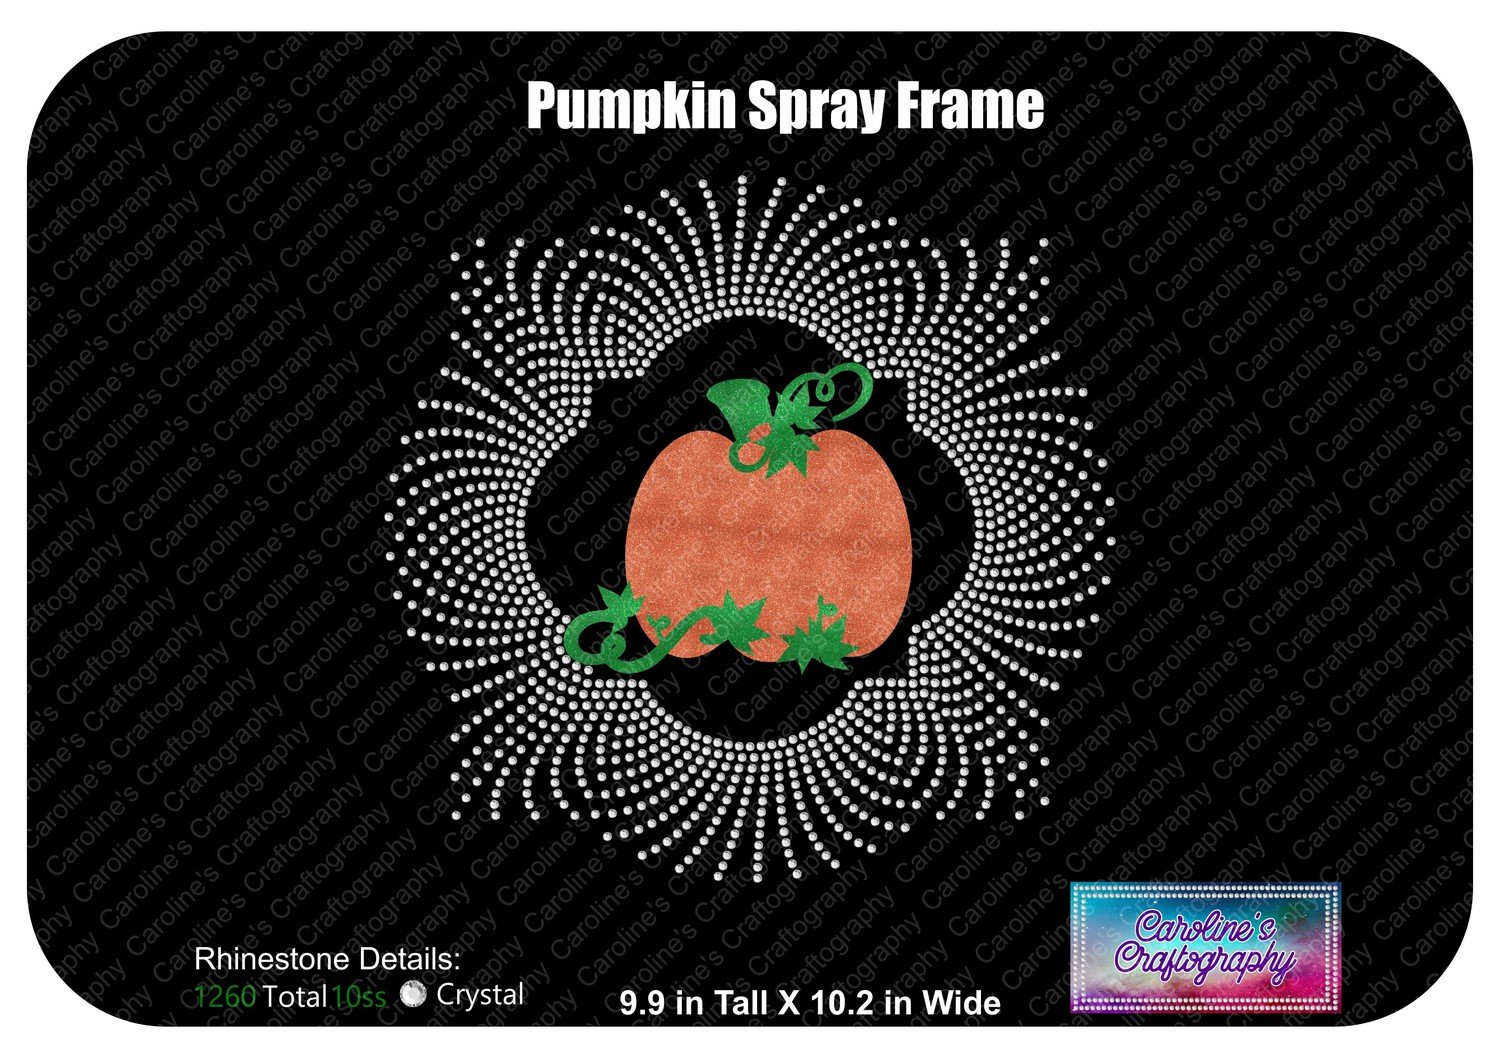 Pumpkin Spray Frame Stone